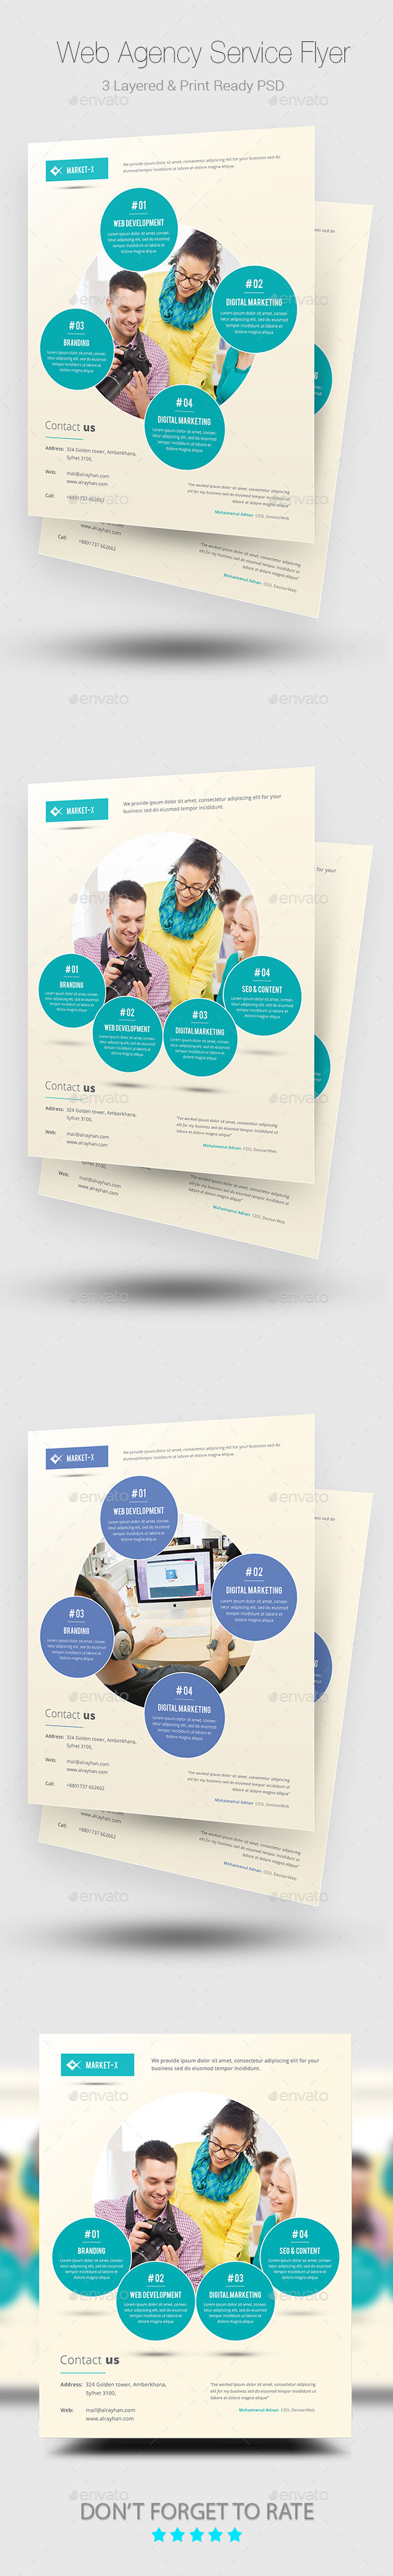 GraphicRiver Web Agency Service Flyer Templates 10066846